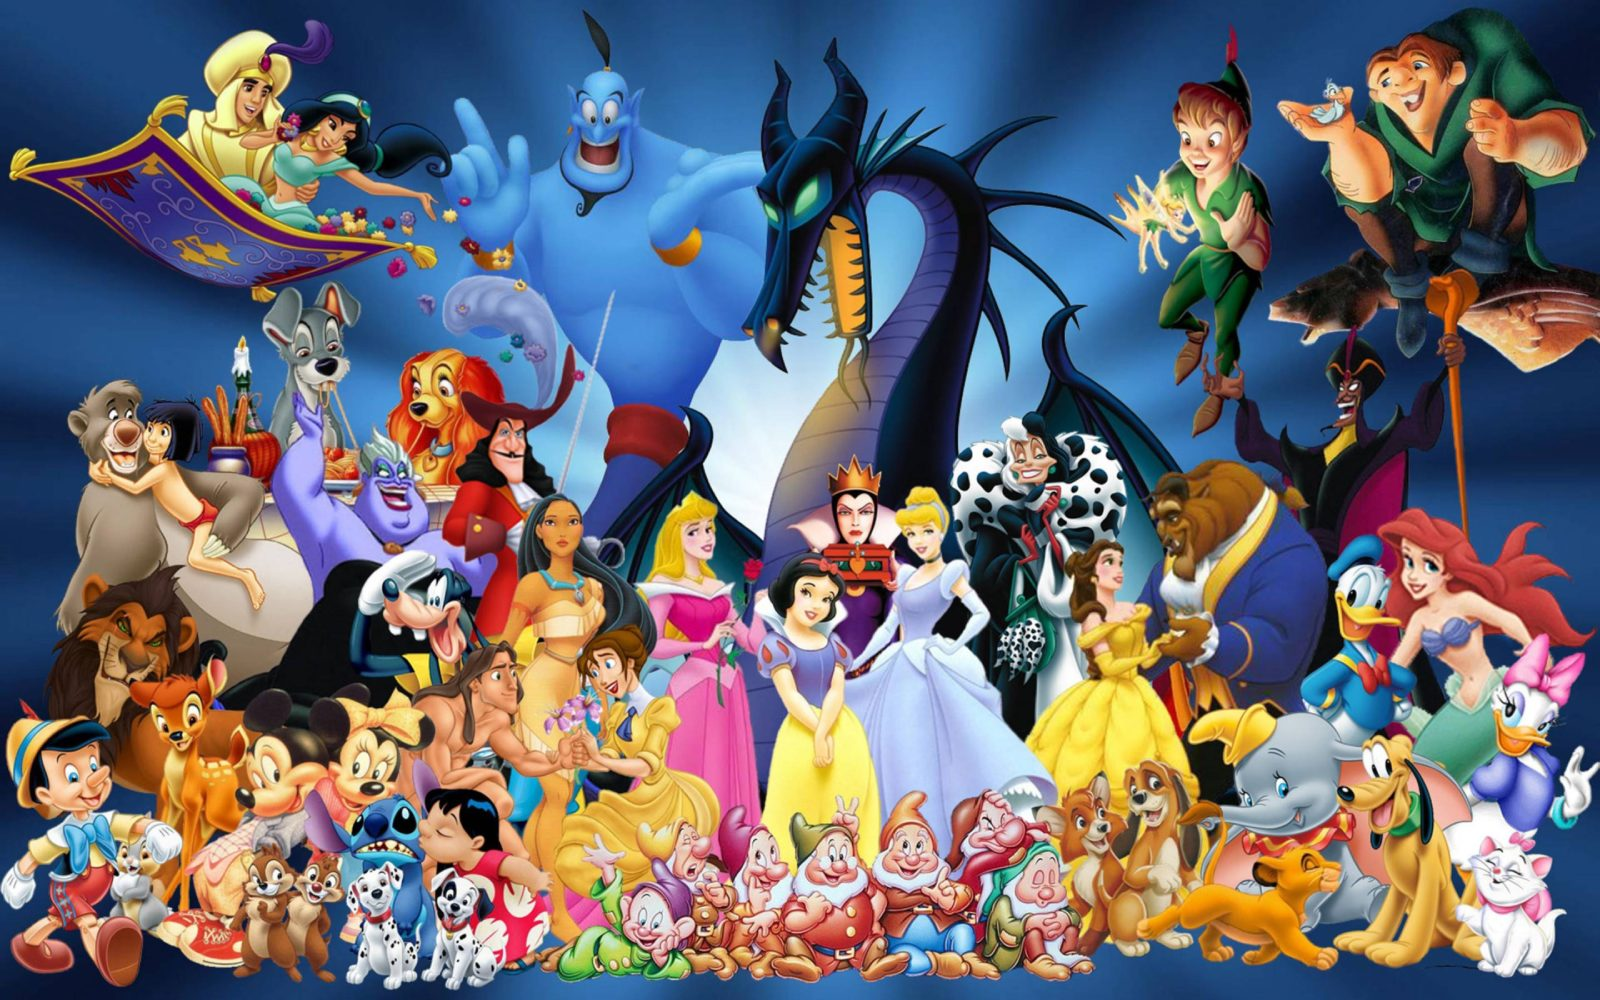 A Collection of Animated Disney Characters